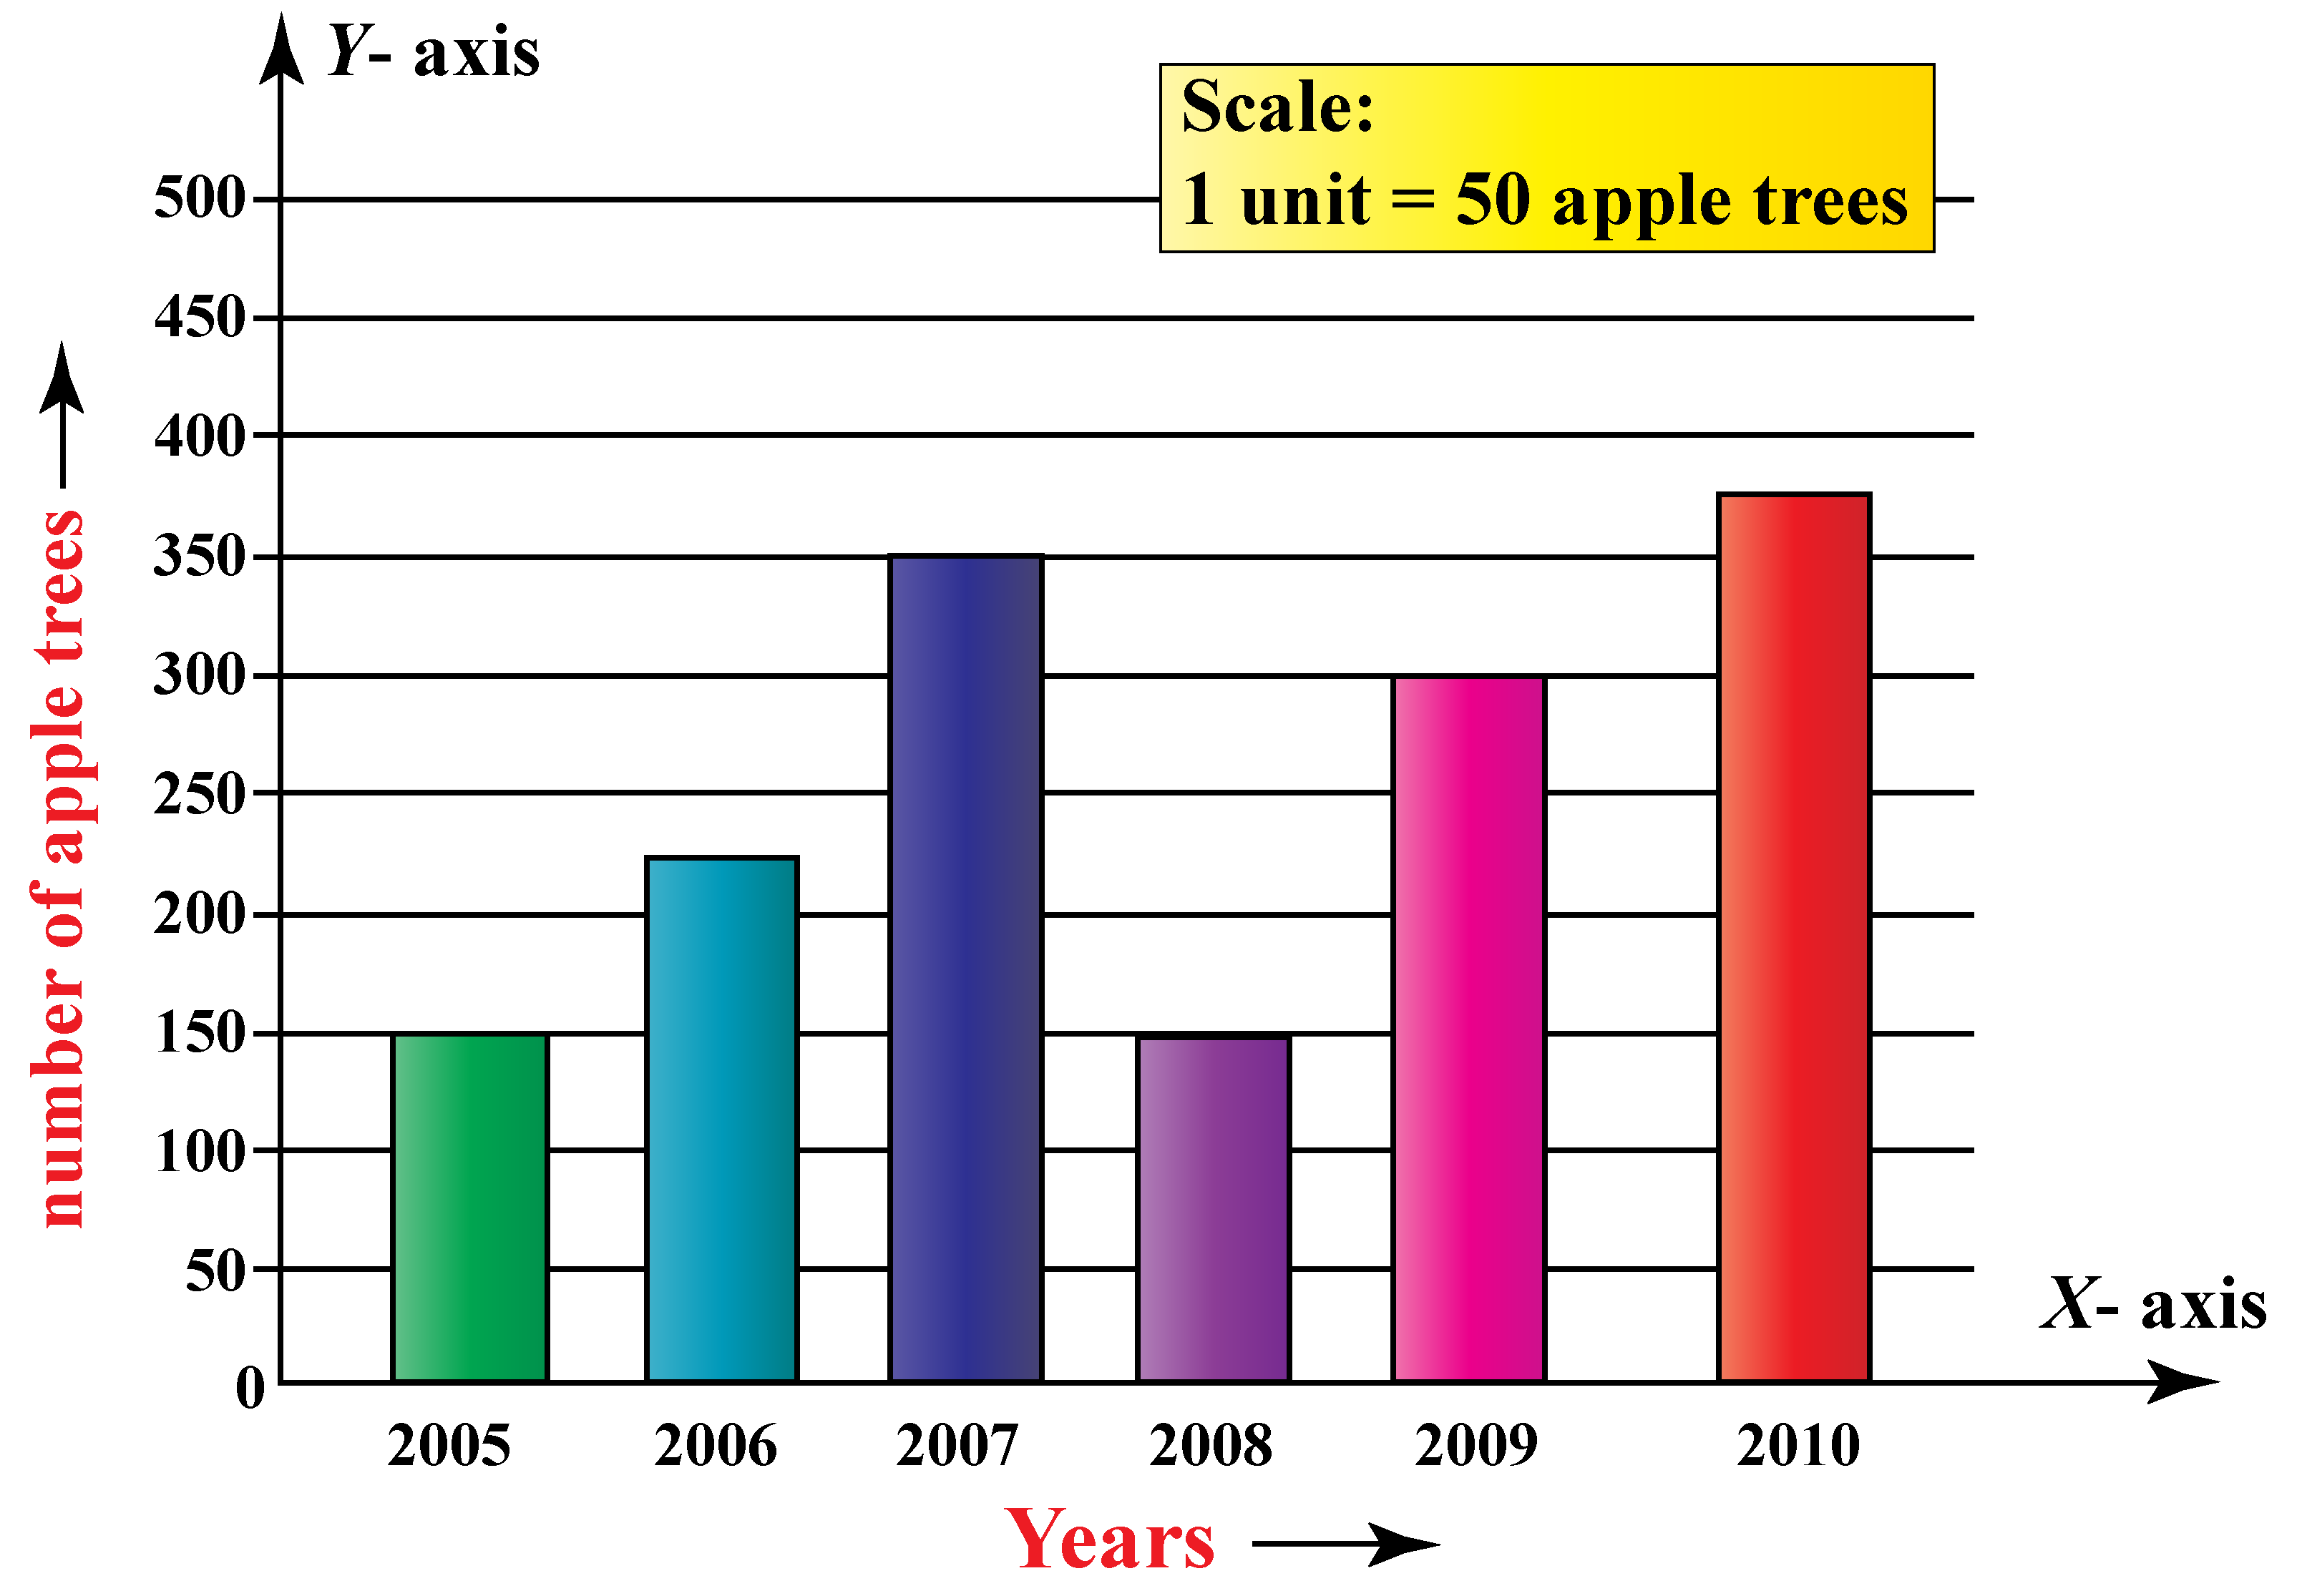 Bar graph shows the number of apple trees planted by the Gardenerof a school in different years.